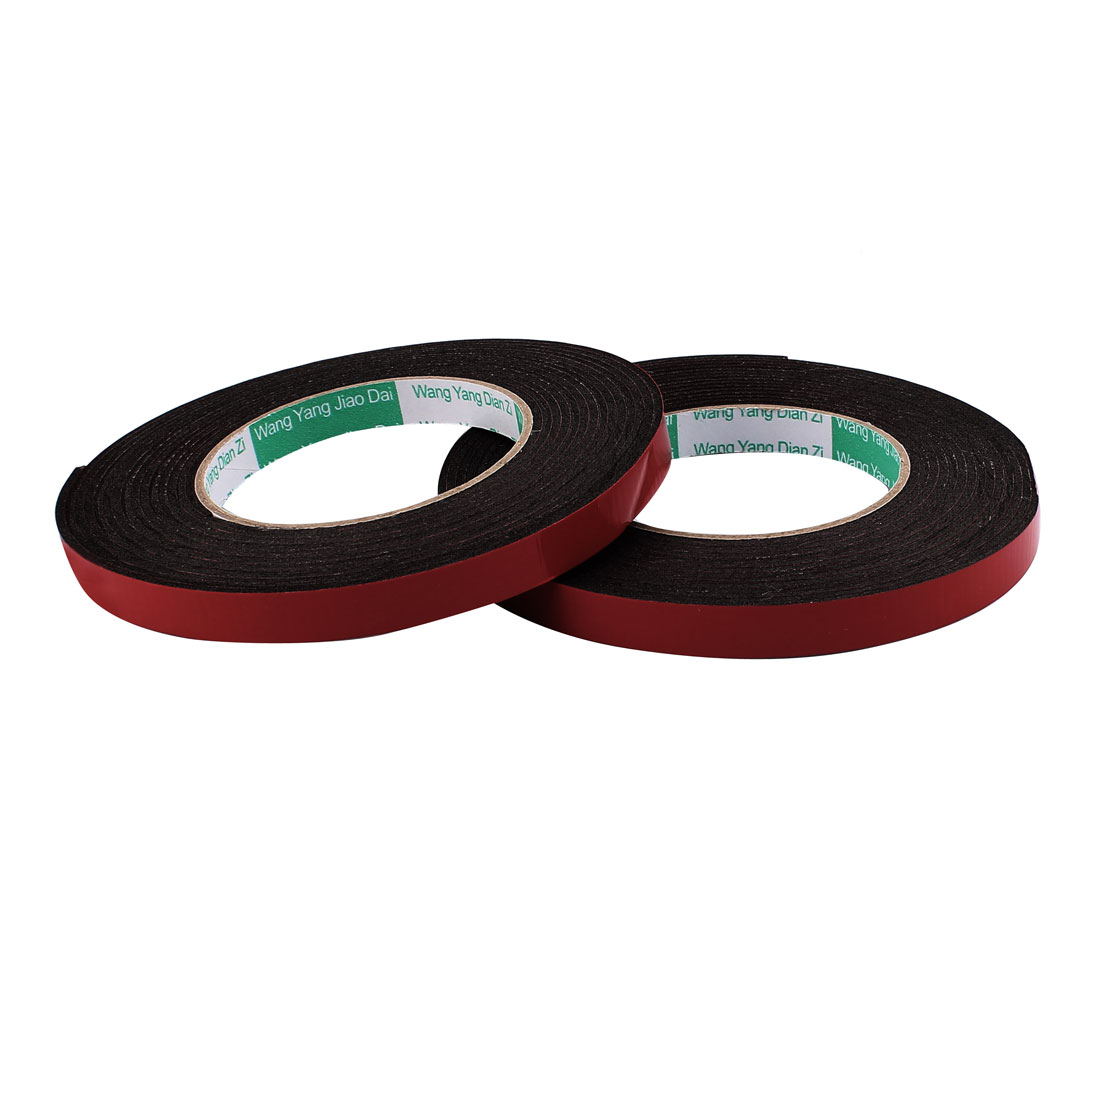 2 Pcs 1.2CM Width 5M Length 2MM Thick Dual Sided Sealing Shockproof Sponge Tape